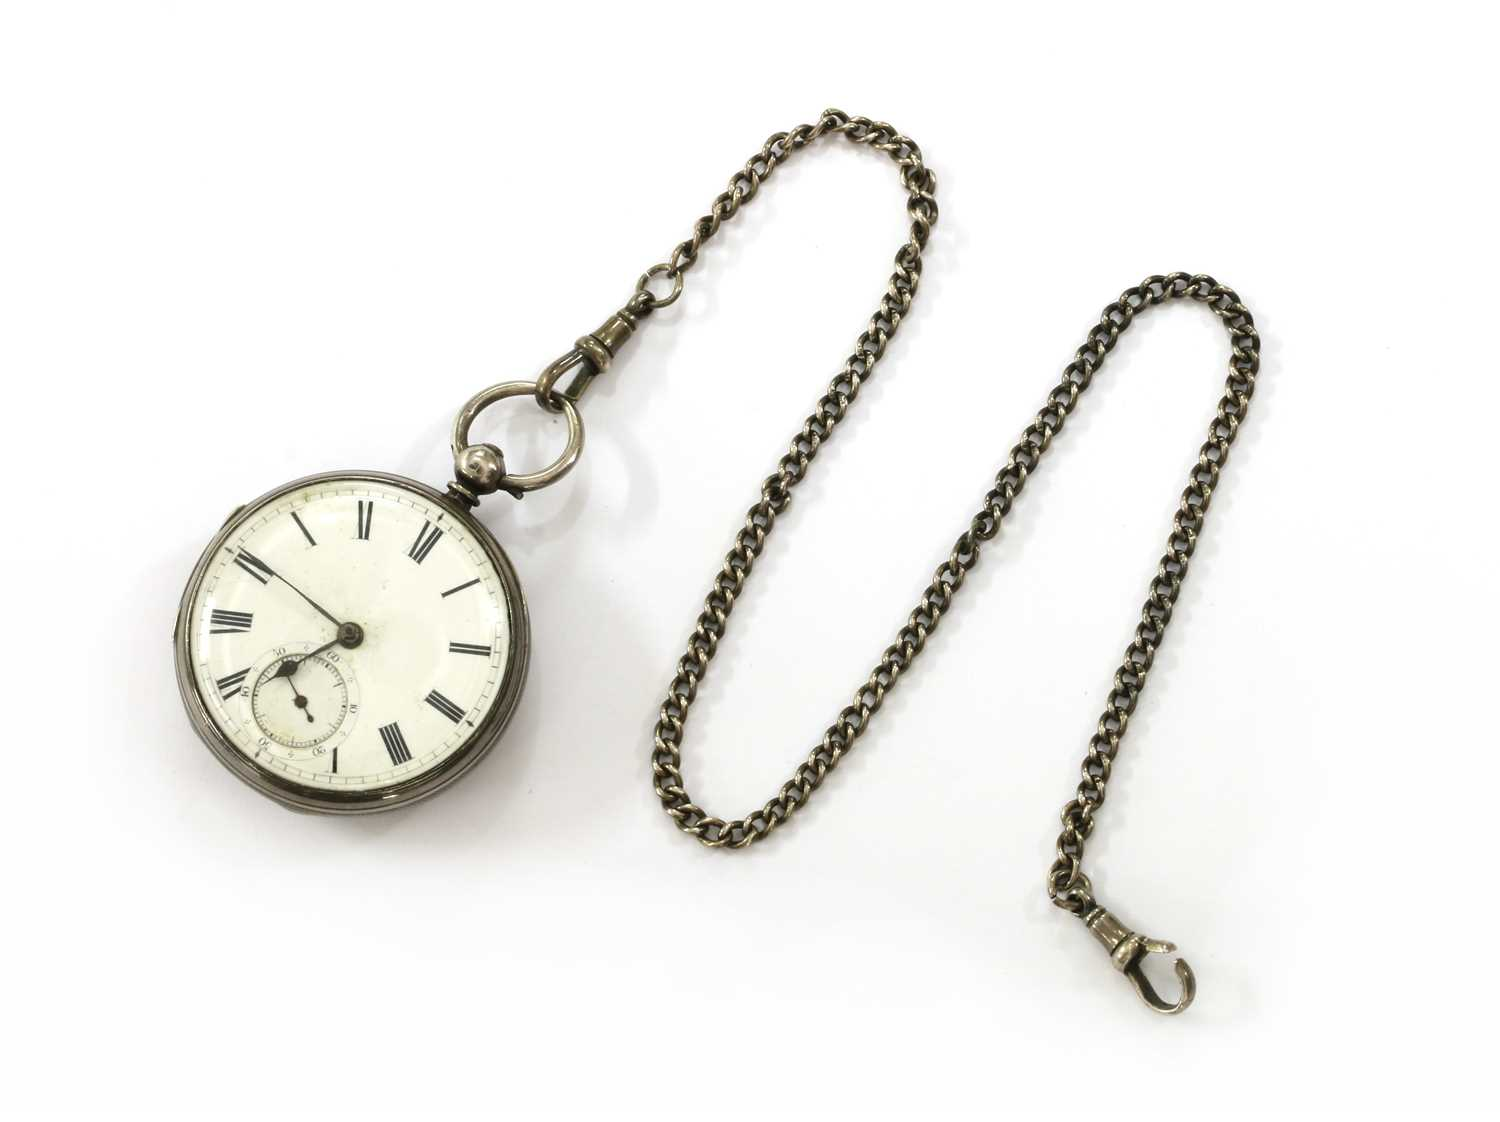 A sterling silver open-faced key wound pocket watch,